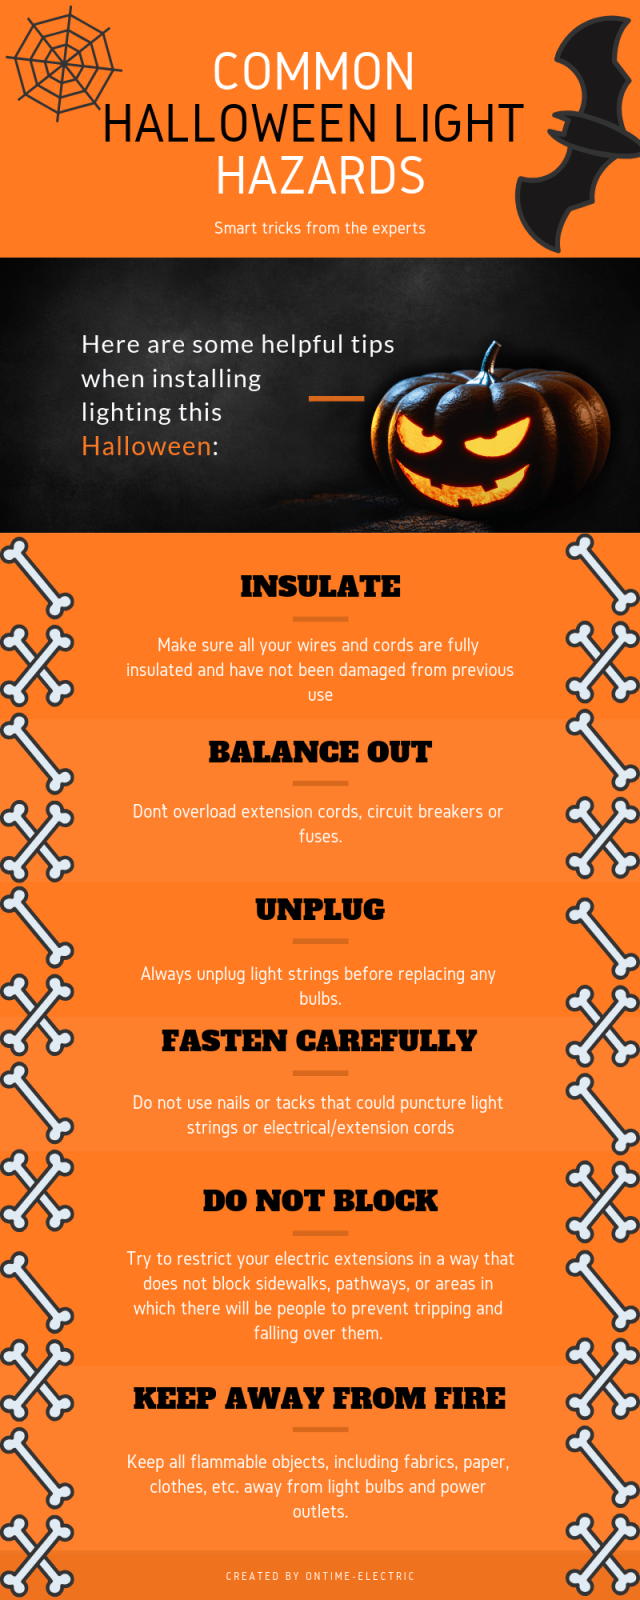 Halloween lights hazard infographic